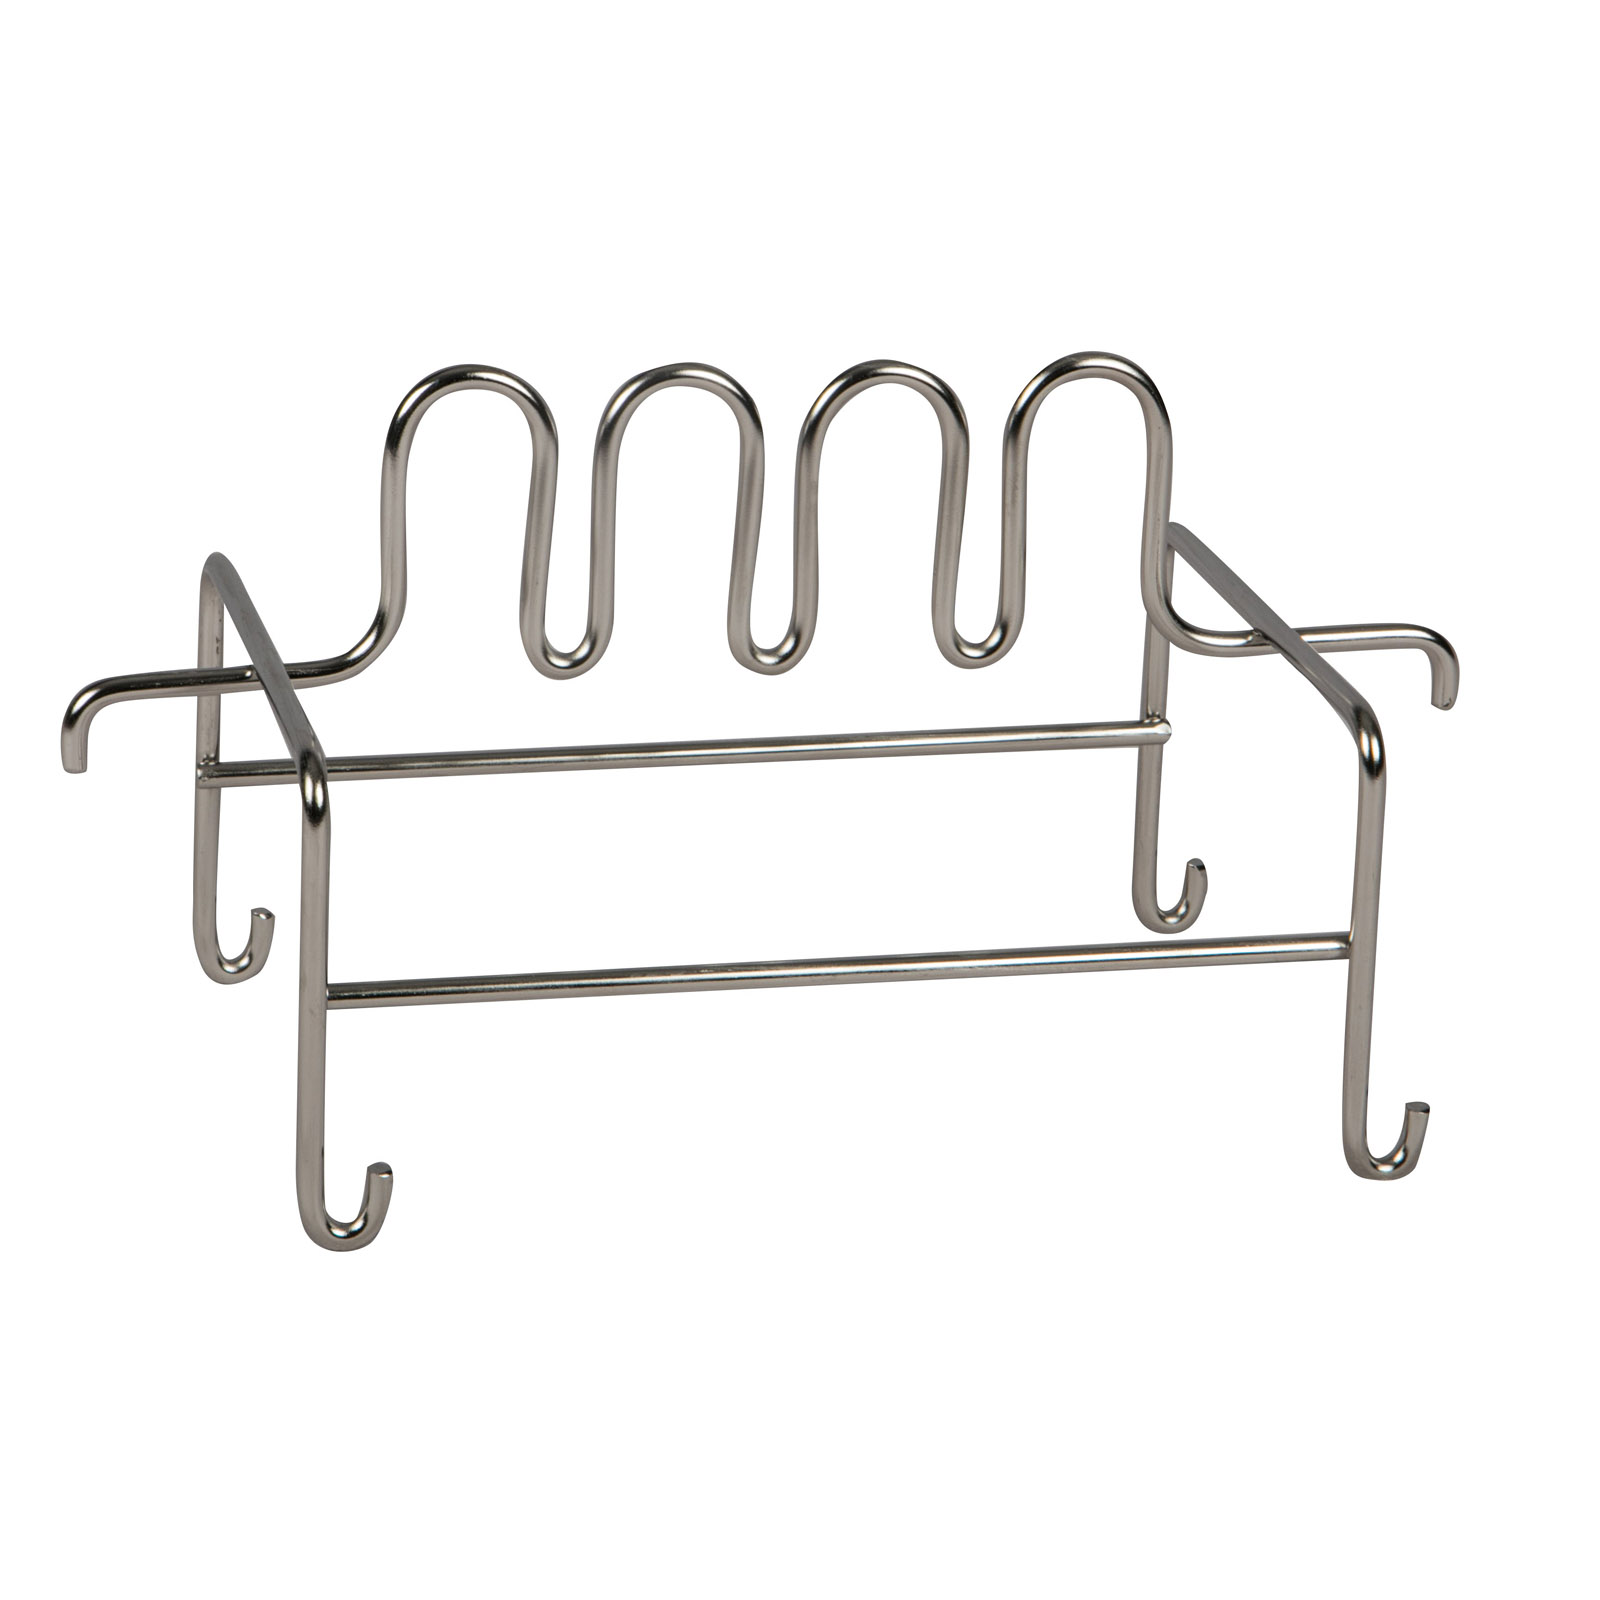 San Jamar CNCRK cutting board rack